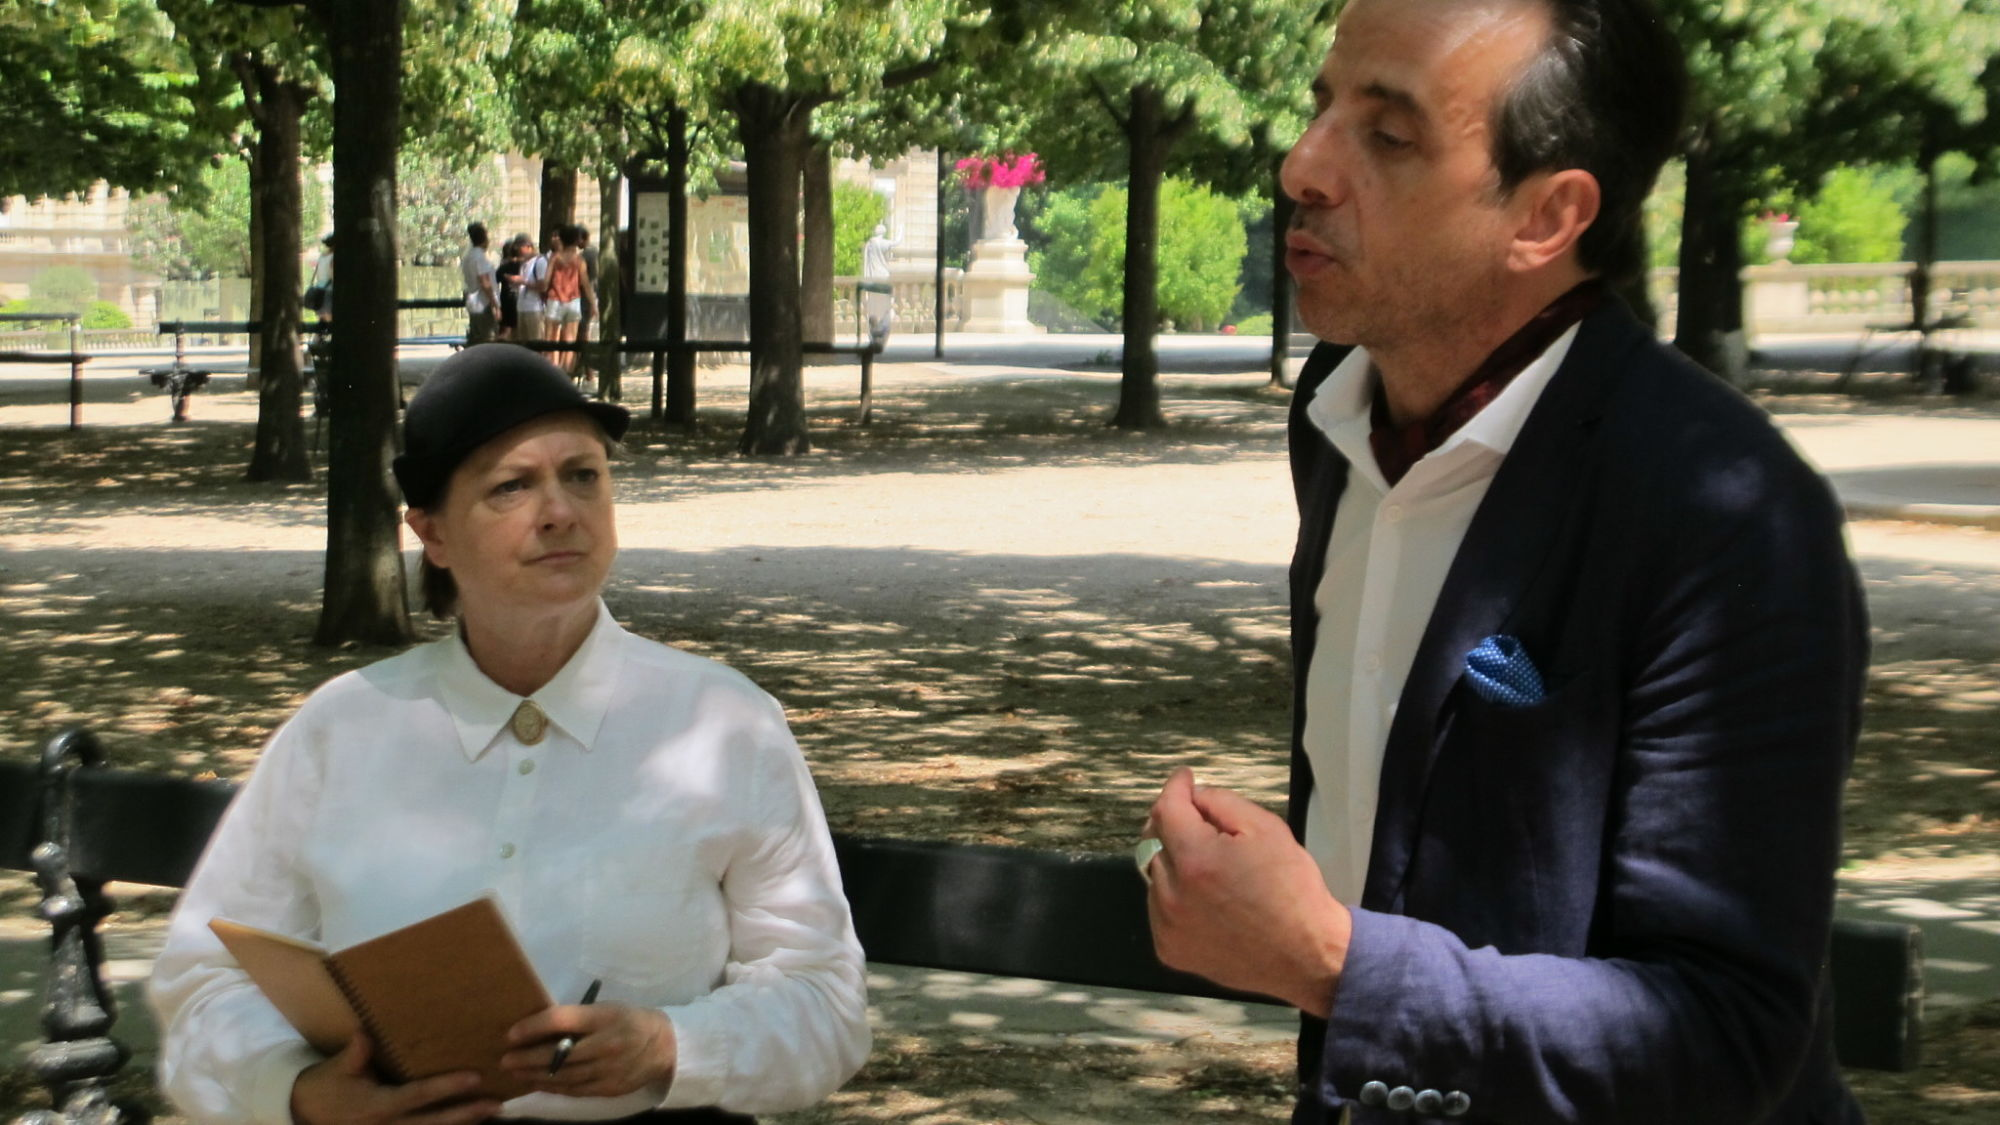 Gertrude Stein and Ernest Hemingway overheard by Papa's Paris Tour guests in the Luxembourg Gardens, Paris.